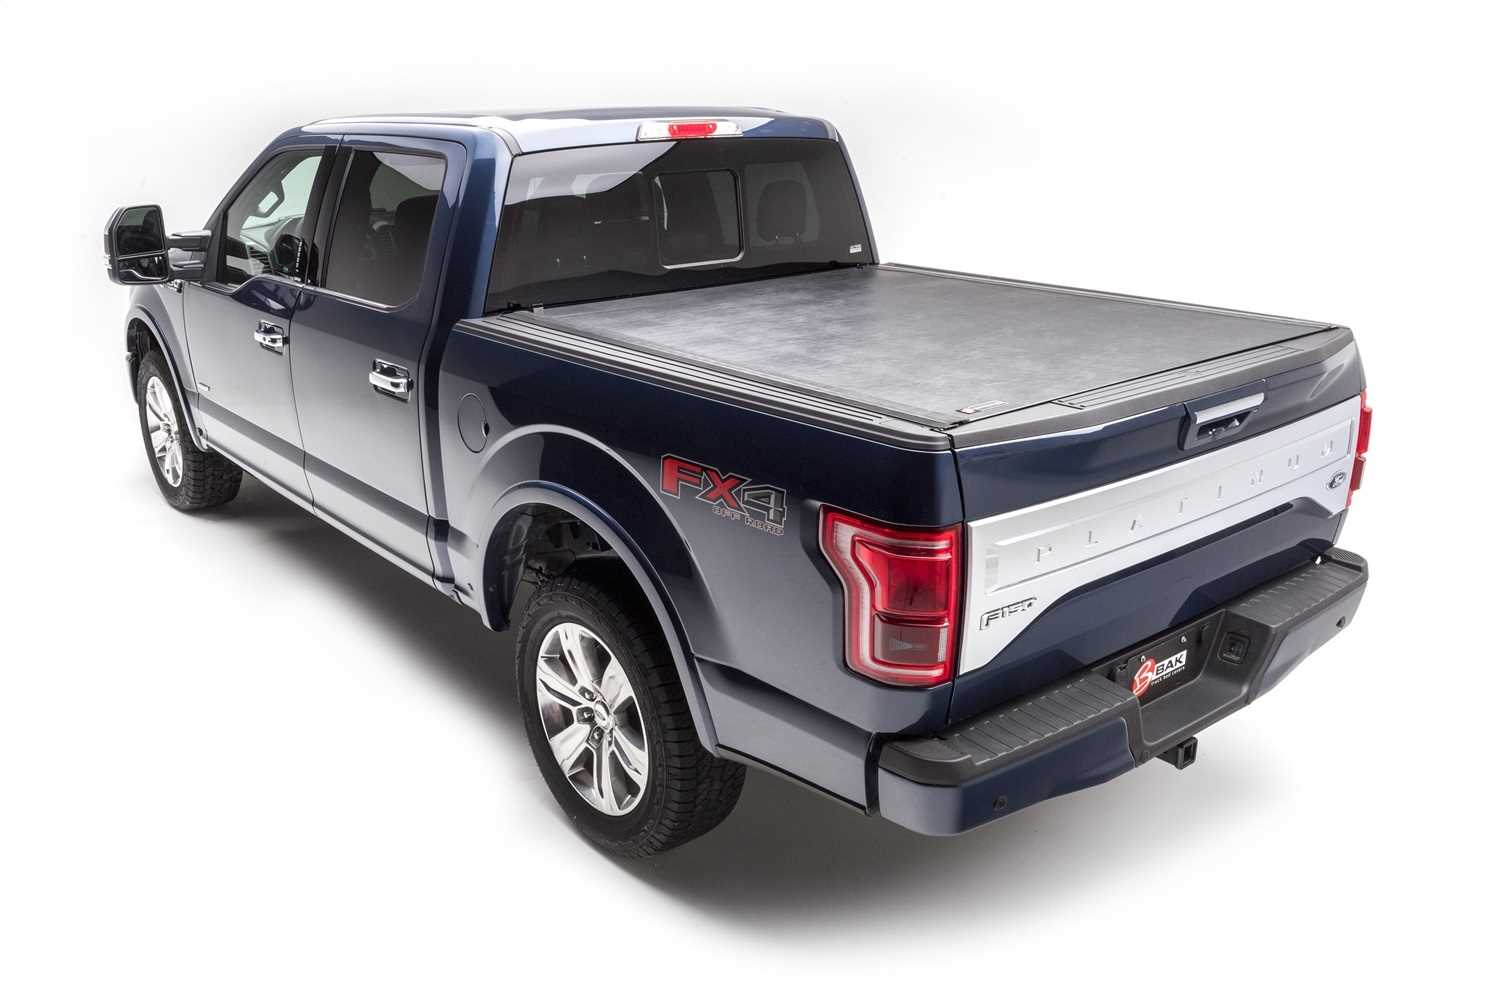 39327 Bak Industries Revolver X2 Hard Rolling Truck Bed Cover